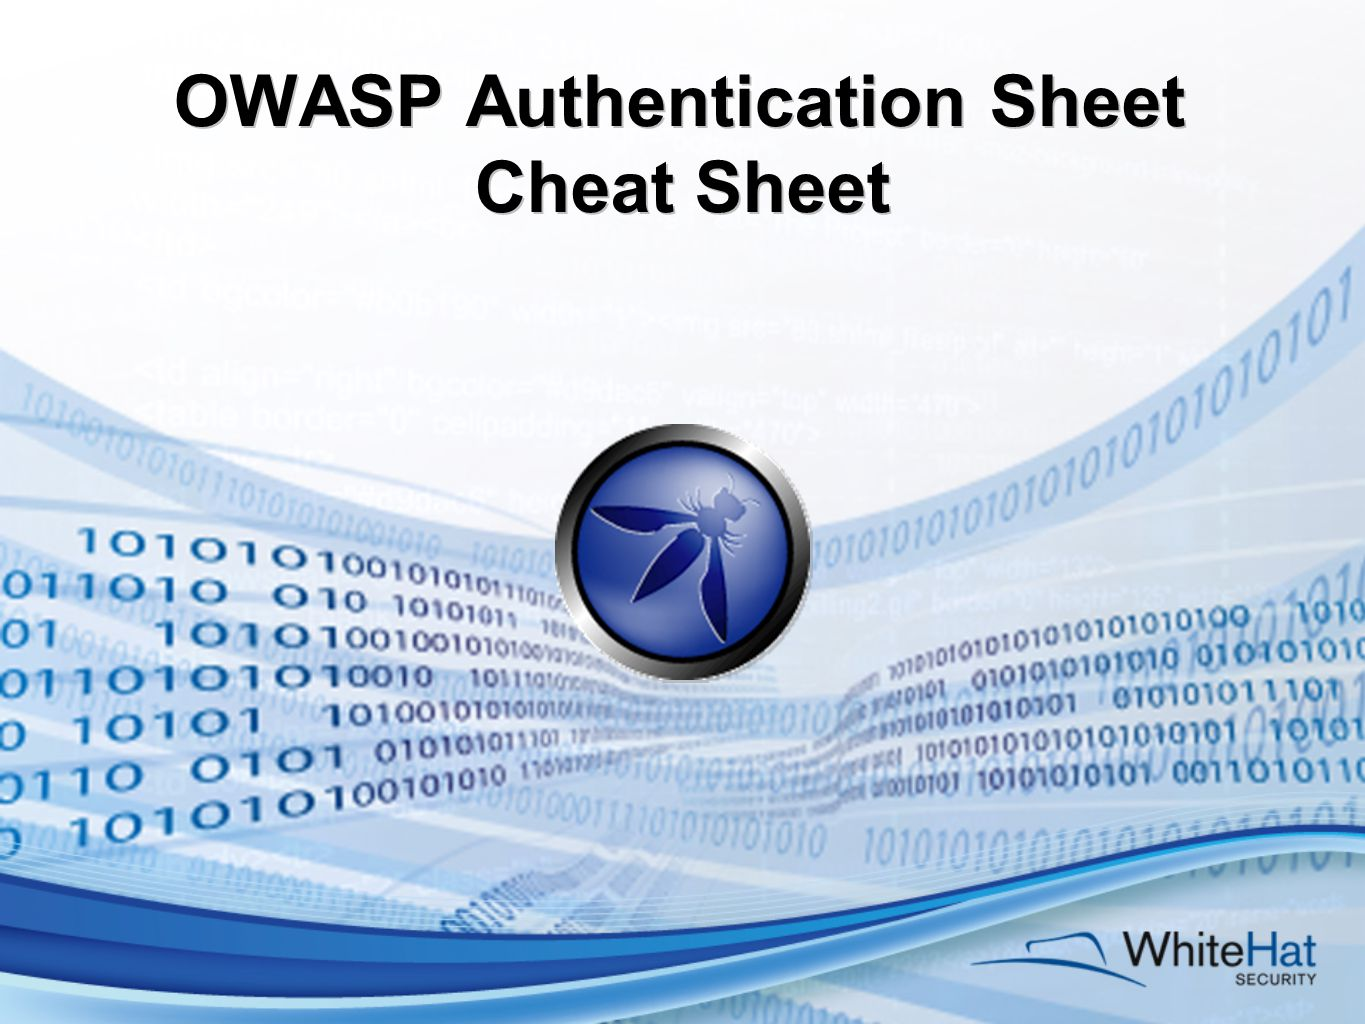 OWASP Authentication Sheet Cheat Sheet